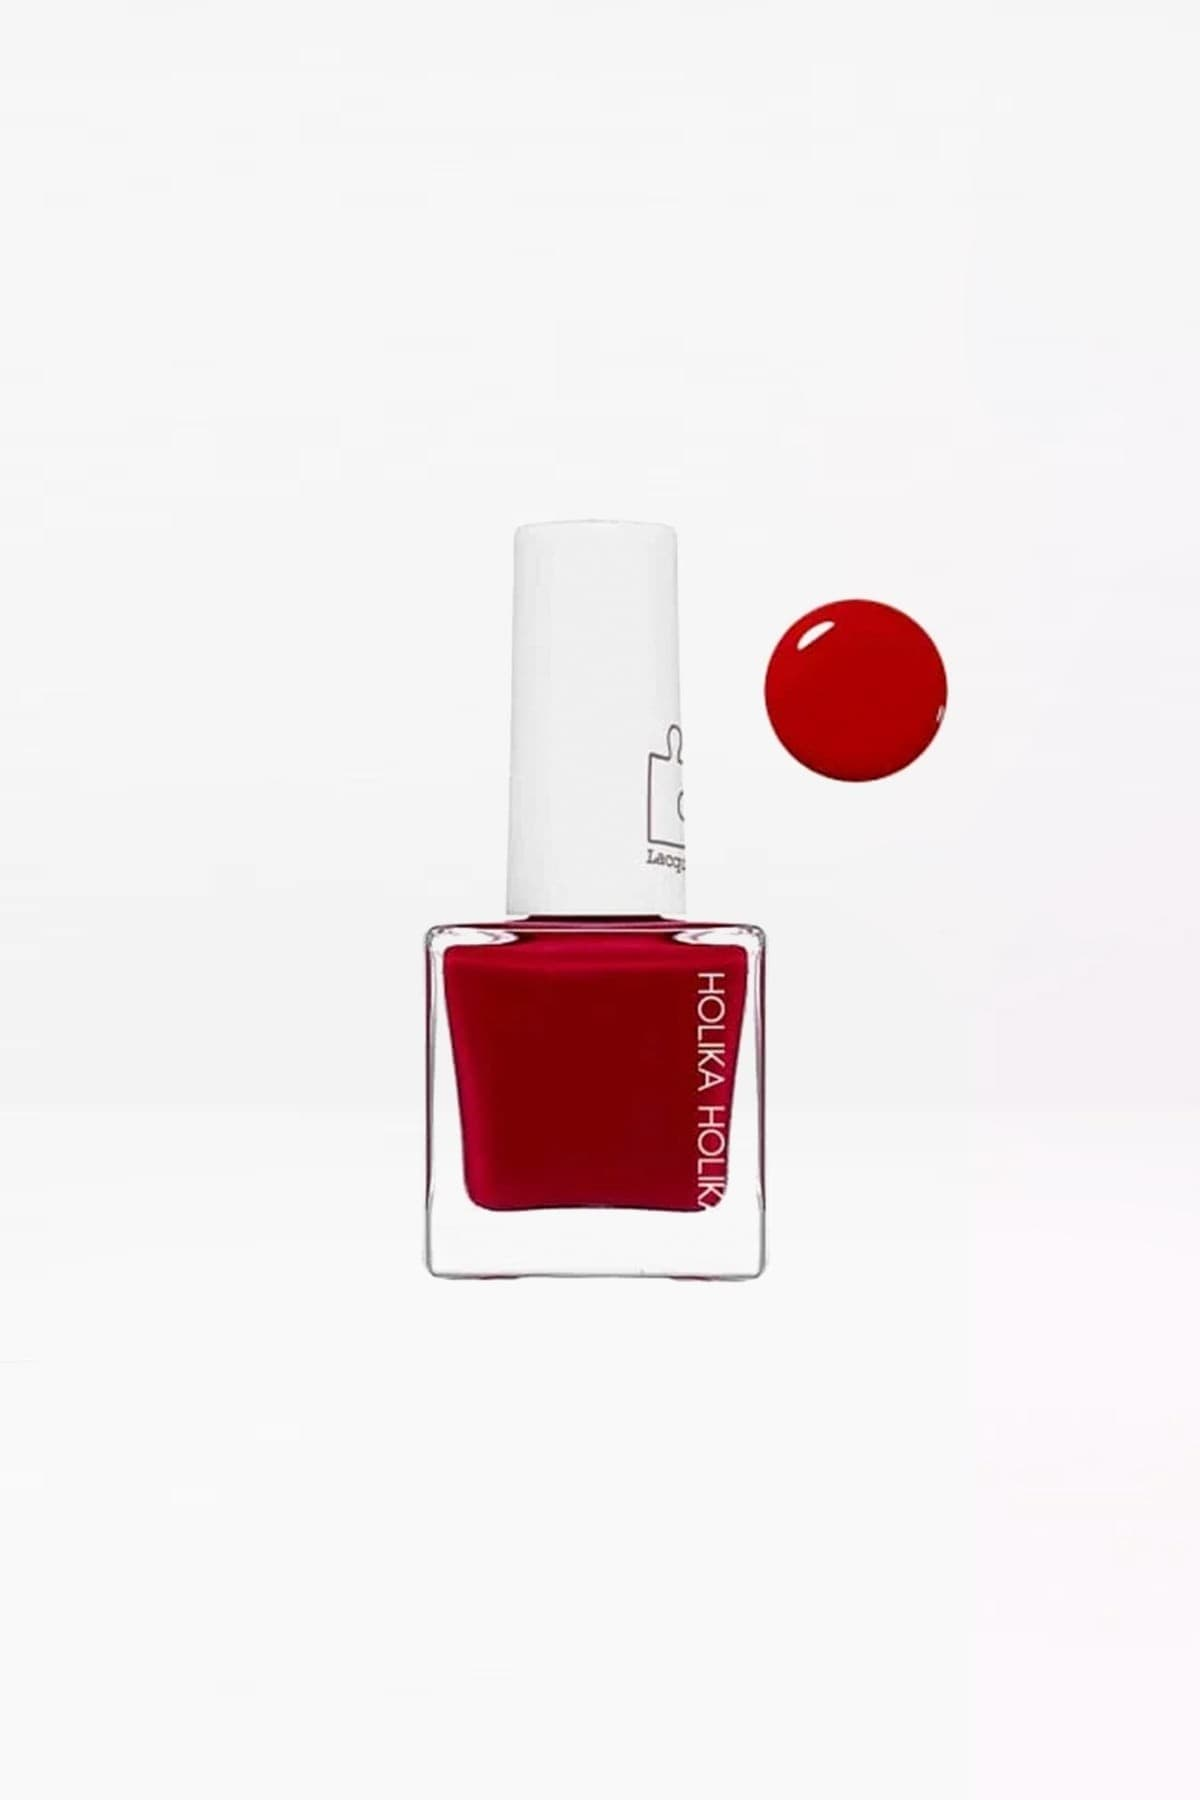 Piece Matching Nails Lacquer Red Lipstick 10ml